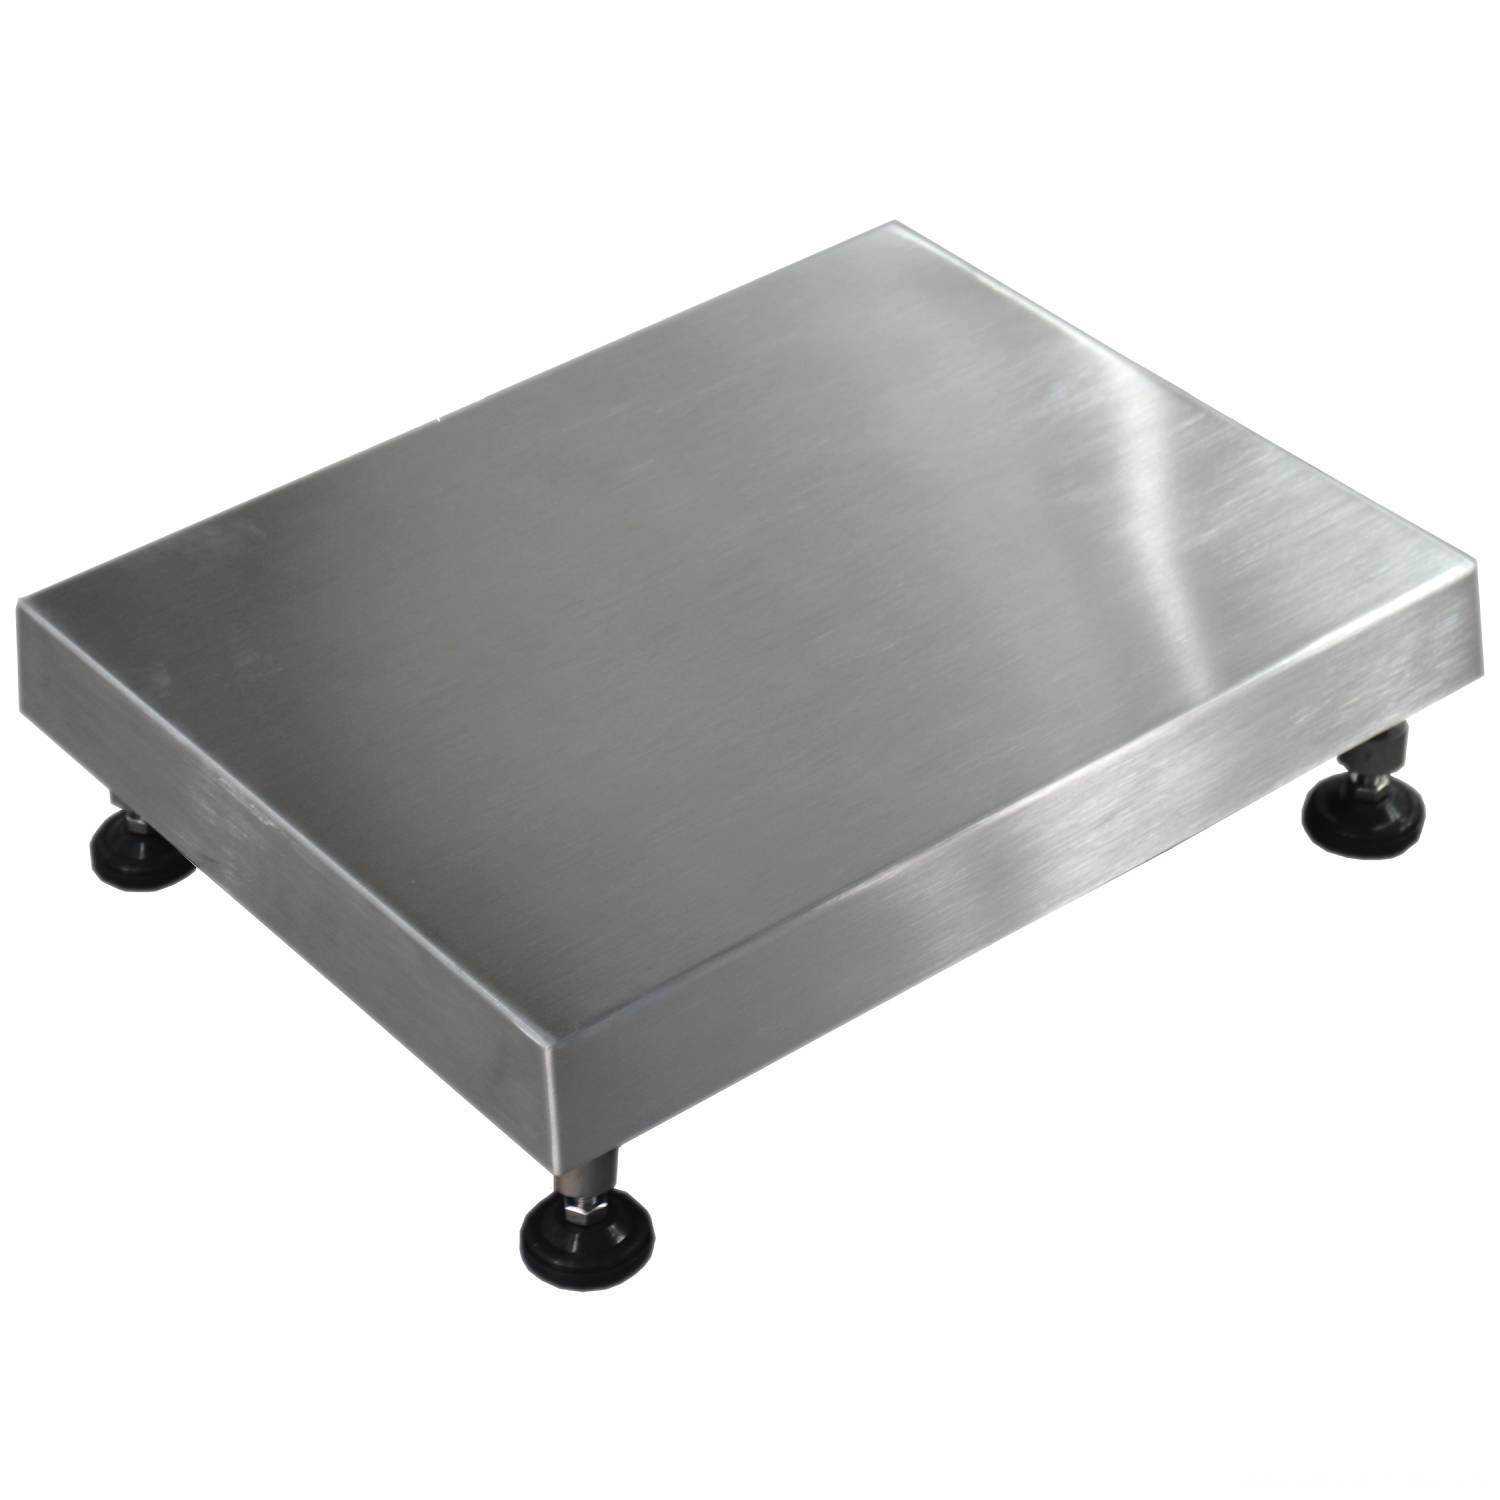 Weighing Scales Stainless Steel Scale